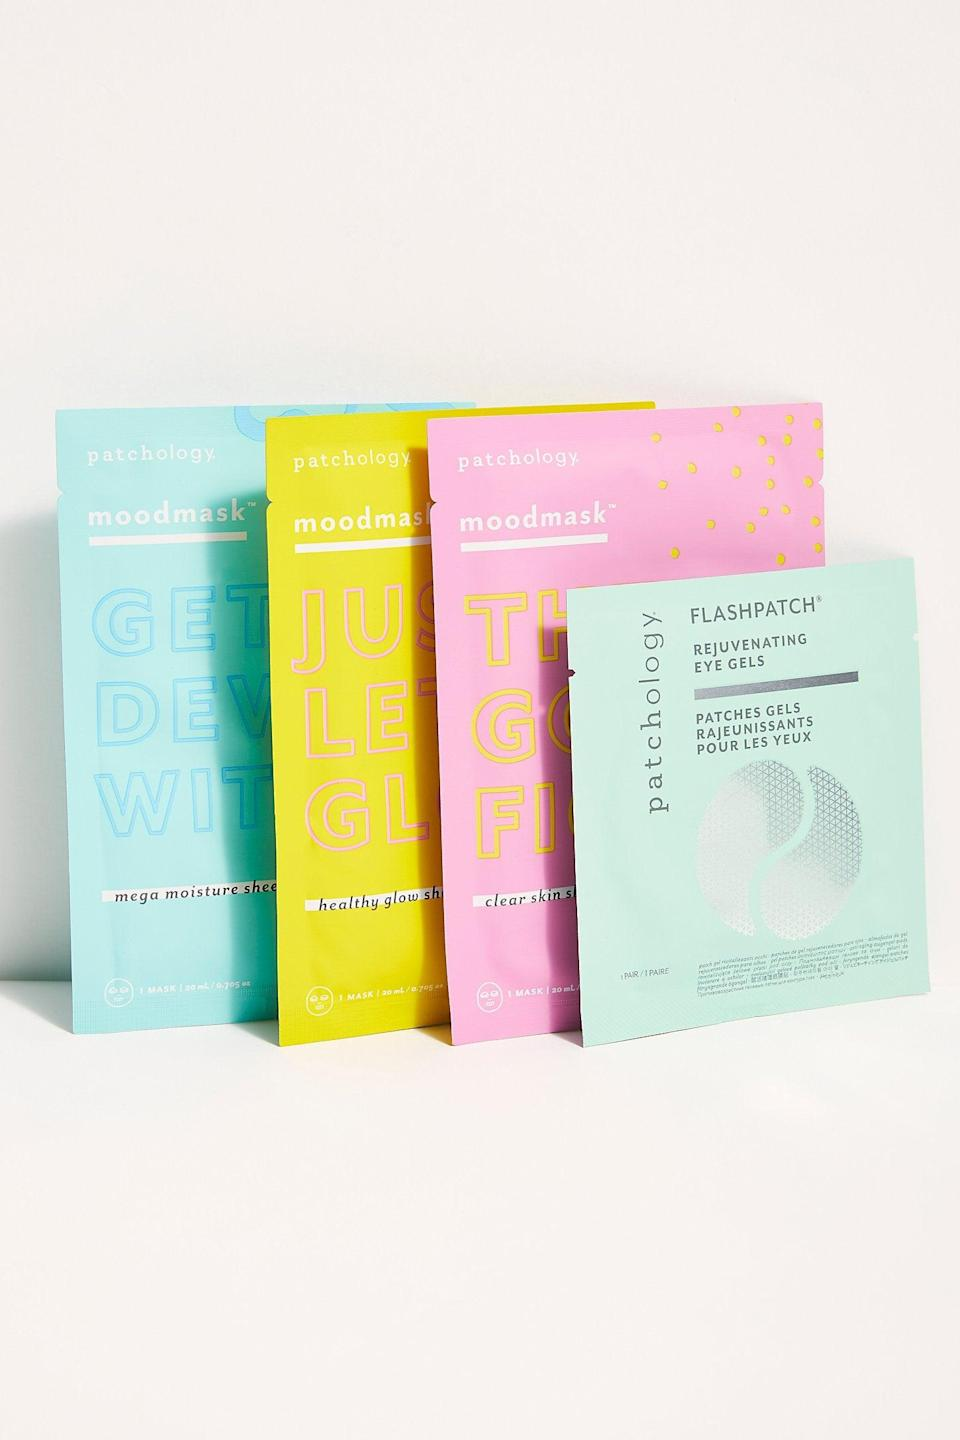 """<h2>Patchology All The Feels Masks Kit</h2><br>Your bestie's skin — like their winning personality — is multi-dimensional, and a one-trick mask won't suffice. Patchology's set contains three masks — one to clear up blemishes, one to promote a healthy glow, and one to hydrate — in addition to a set of rejuvenating eye gels, to cover every facet of skin that can't be boxed in.<br><br><em>Shop <strong><a href=""""https://www.freepeople.com/"""" rel=""""nofollow noopener"""" target=""""_blank"""" data-ylk=""""slk:Free People"""" class=""""link rapid-noclick-resp"""">Free People</a></strong></em><br><br><strong>Patchology</strong> All The Feels Masks Kit, $, available at <a href=""""https://go.skimresources.com/?id=30283X879131&url=https%3A%2F%2Fwww.freepeople.com%2Fshop%2Fpatchology-all-the-feels-masks-kit%2F%3Fcategory%3Dface-masks%26color%3D000"""" rel=""""nofollow noopener"""" target=""""_blank"""" data-ylk=""""slk:Free People"""" class=""""link rapid-noclick-resp"""">Free People</a>"""